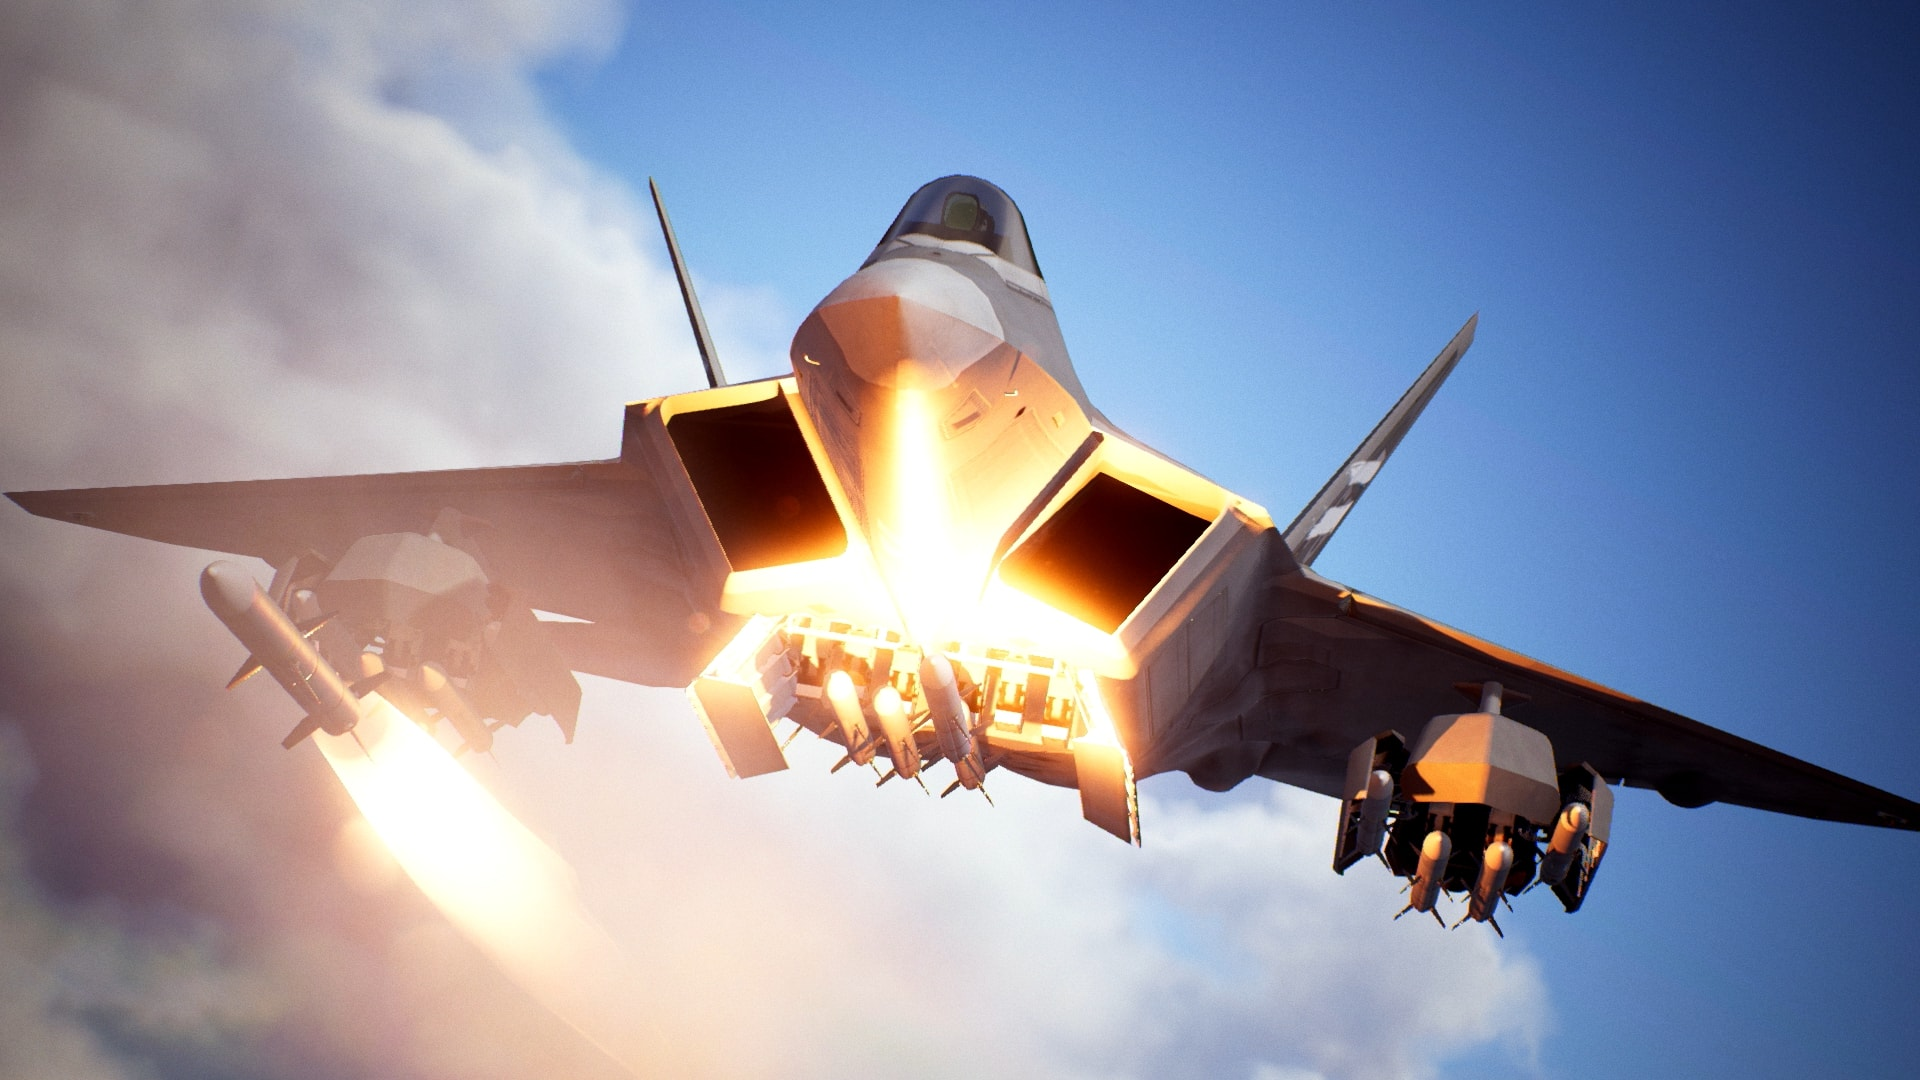 Get pumped for Ace Combat 7: Skies Unknown with the new launch trailer